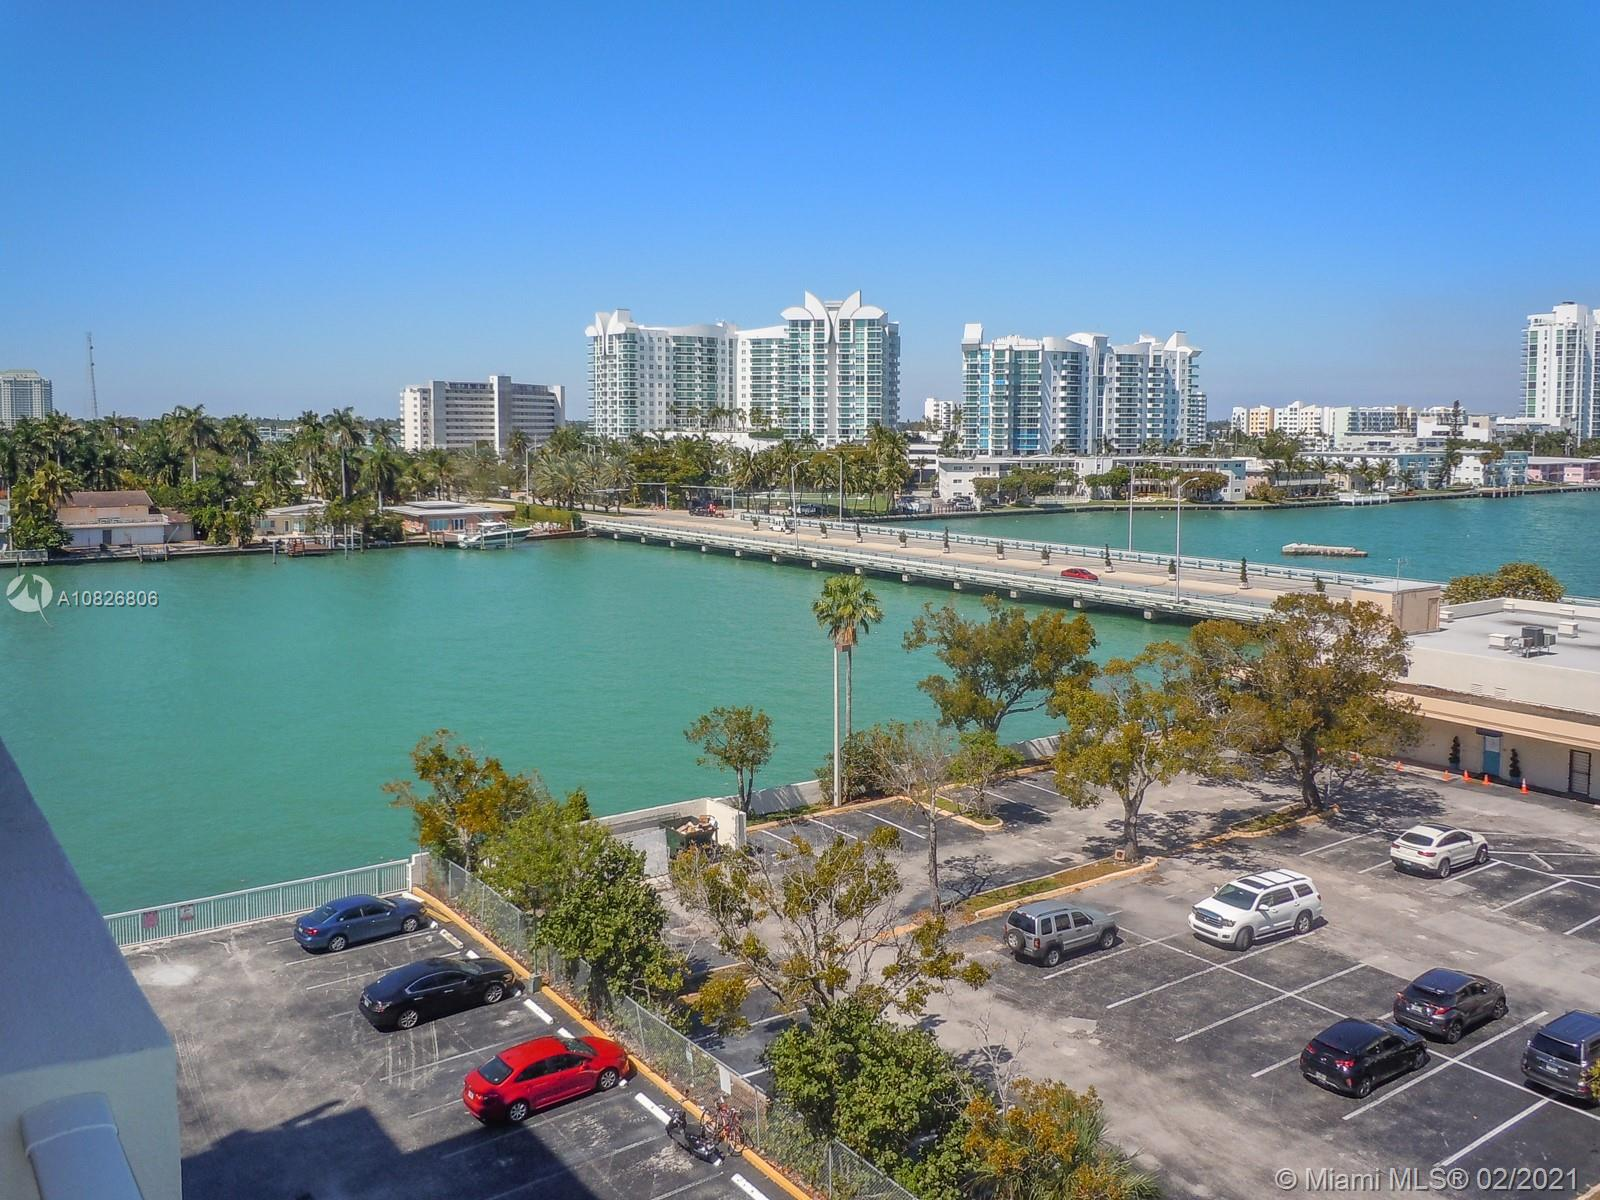 Island Place, 1455 N Treasure Dr Unit 7 D, North Bay Village, Florida 33141, image 23